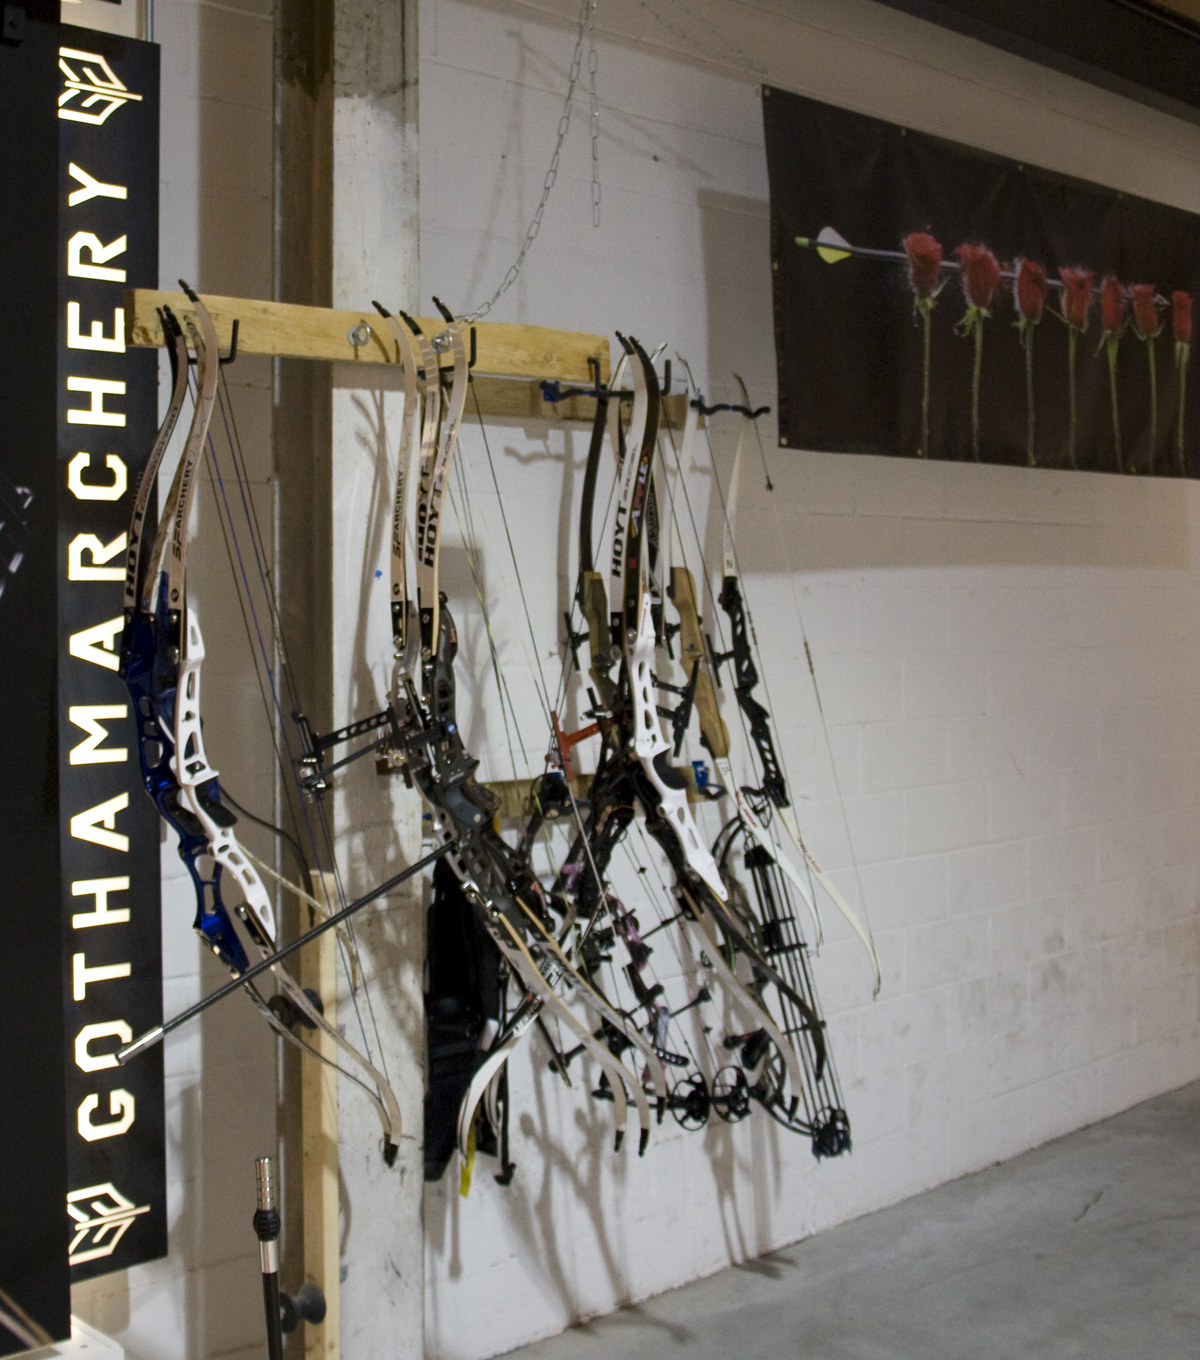 Some of the hardware on display at Brooklyn's Gotham Archery.